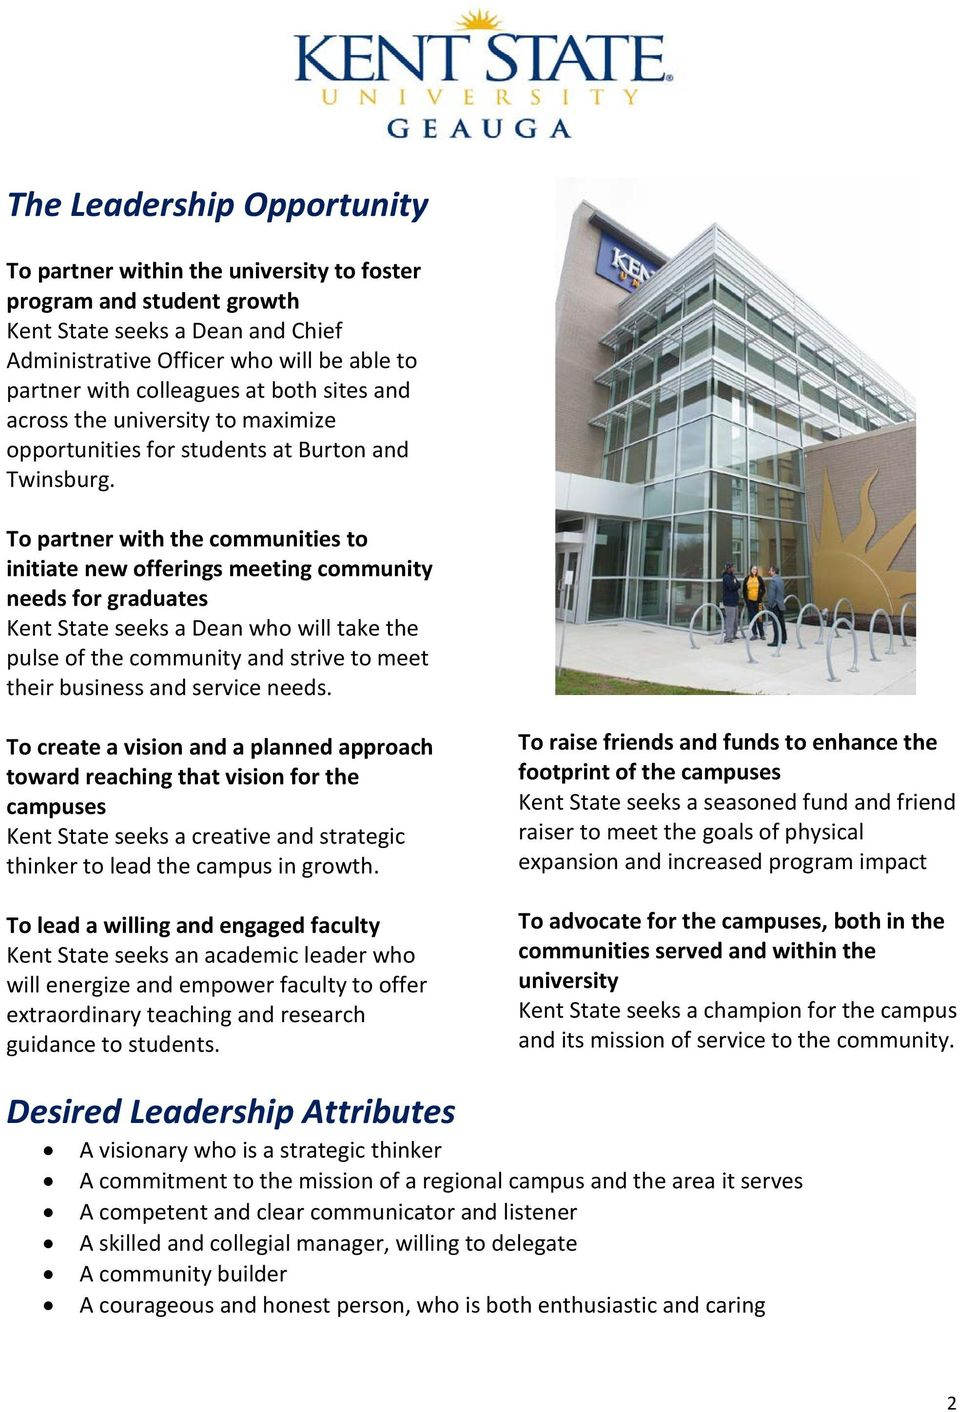 To partner with the communities to initiate new offerings meeting community needs for graduates Kent State seeks a Dean who will take the pulse of the community and strive to meet their business and